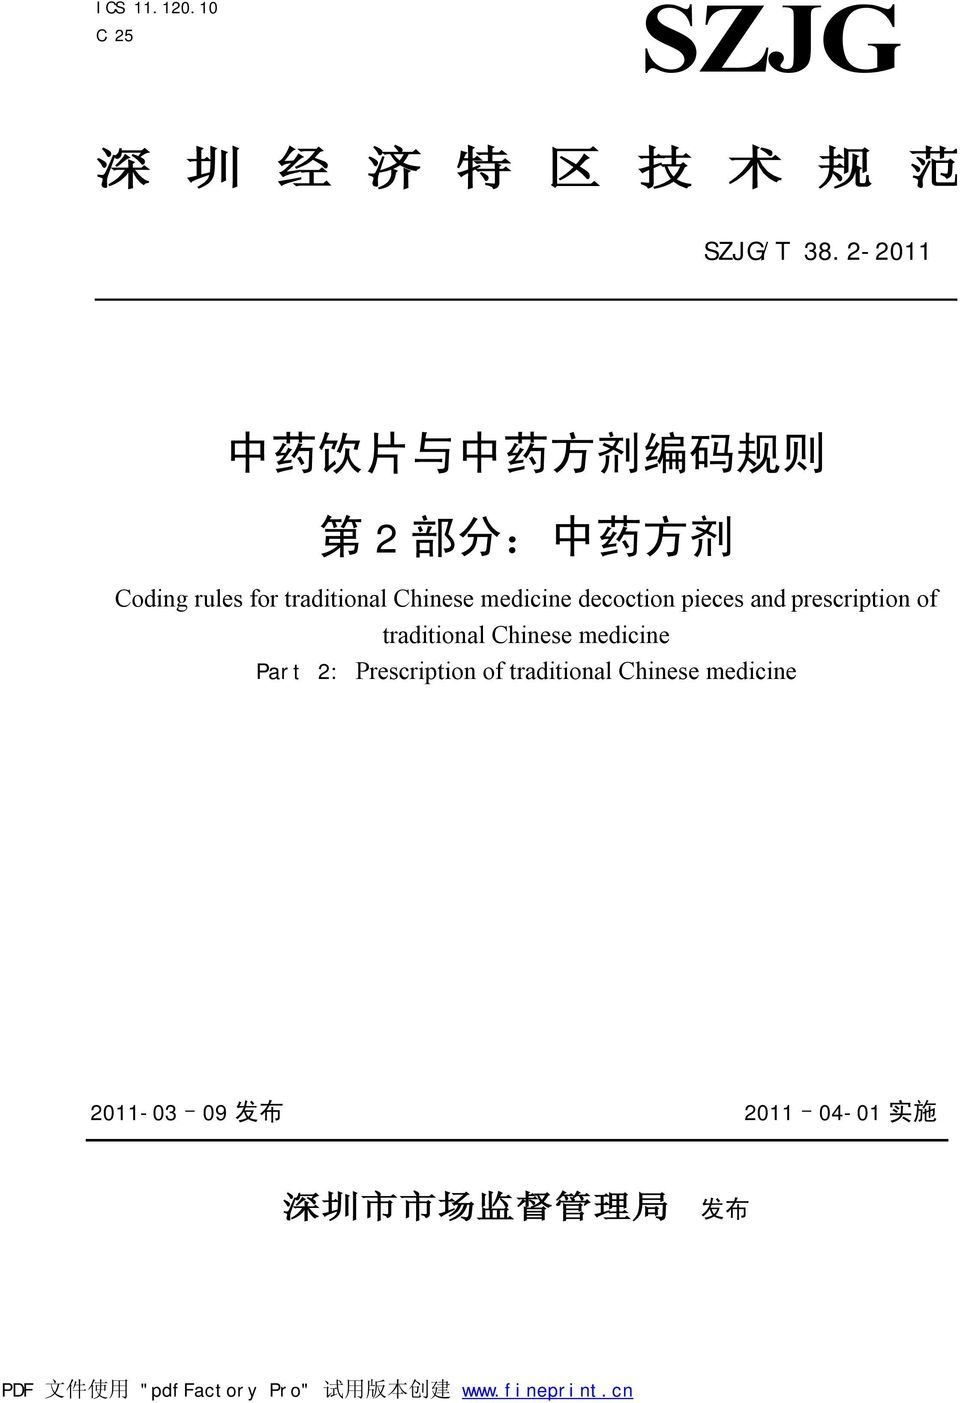 Chinese medicine decoction pieces and prescription of traditional Chinese